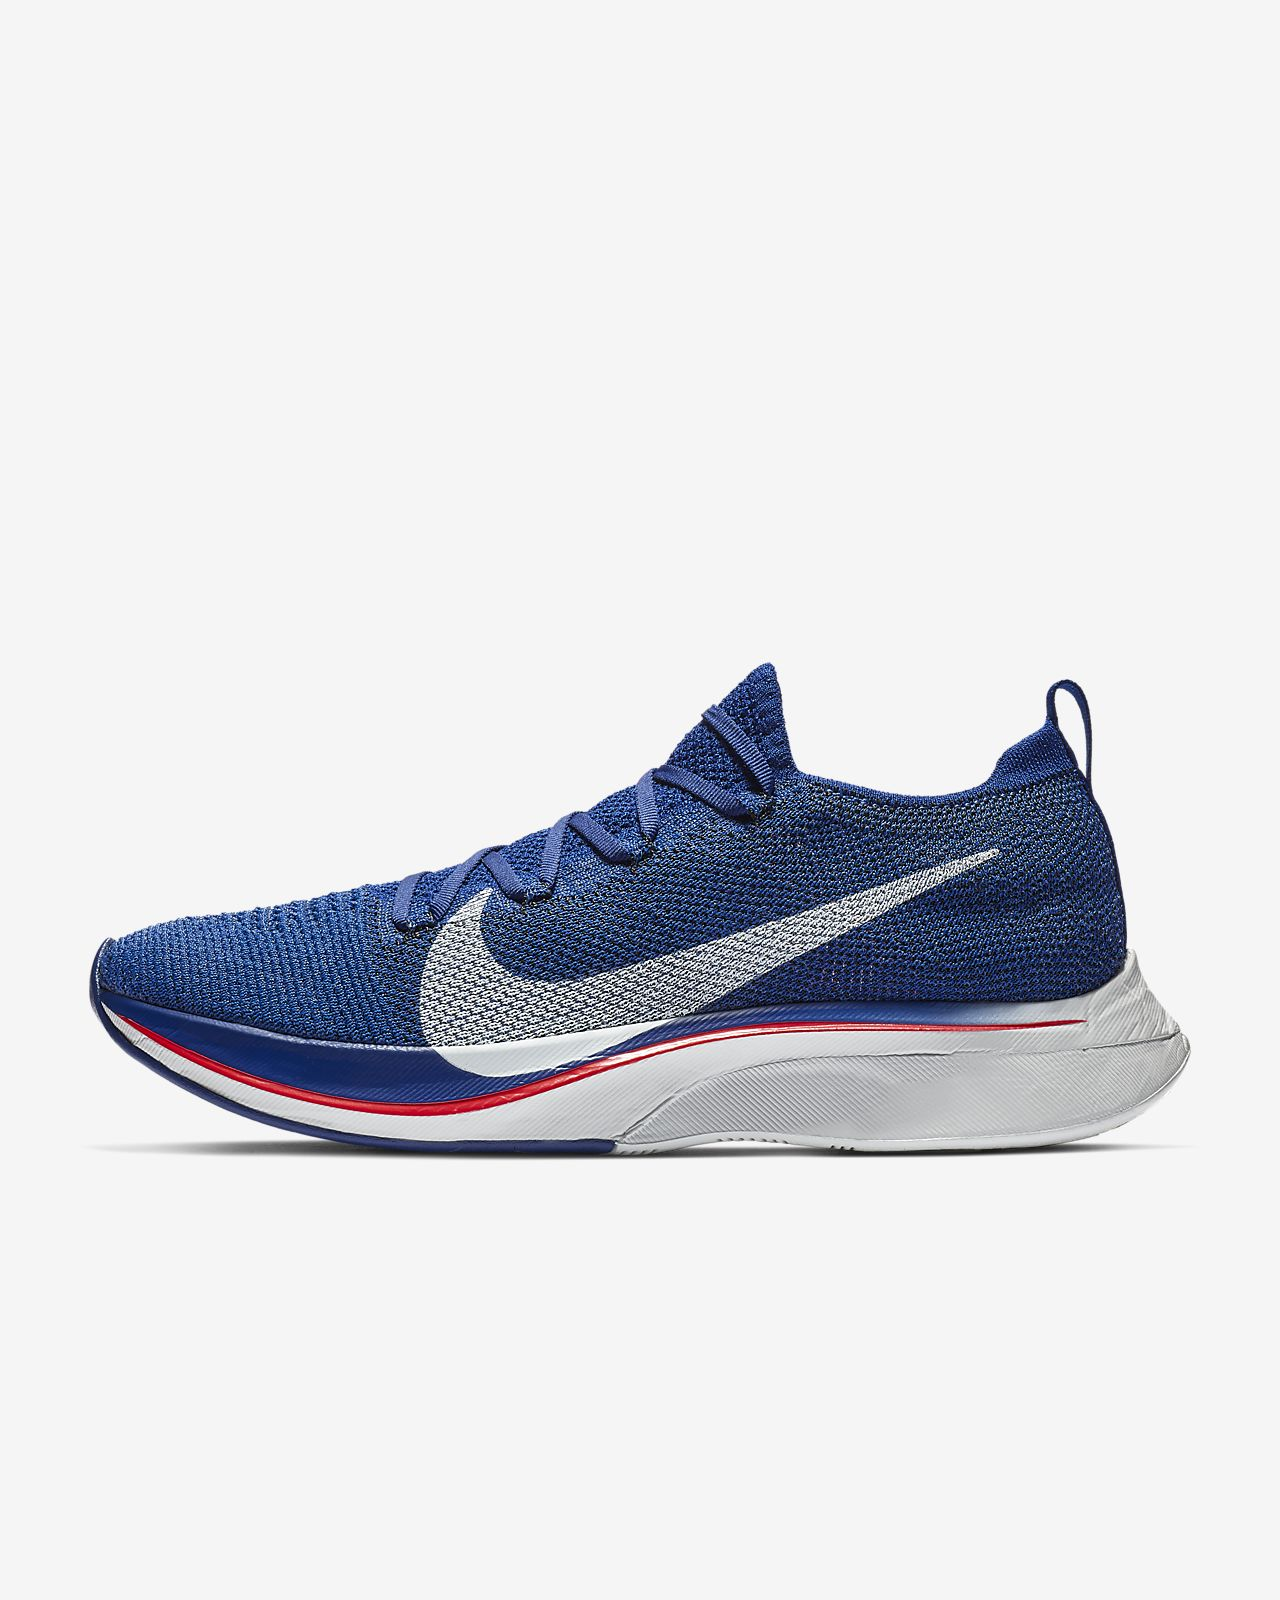 brand new 33a4e cd387 Nike Vaporfly 4% Flyknit Zapatillas de running